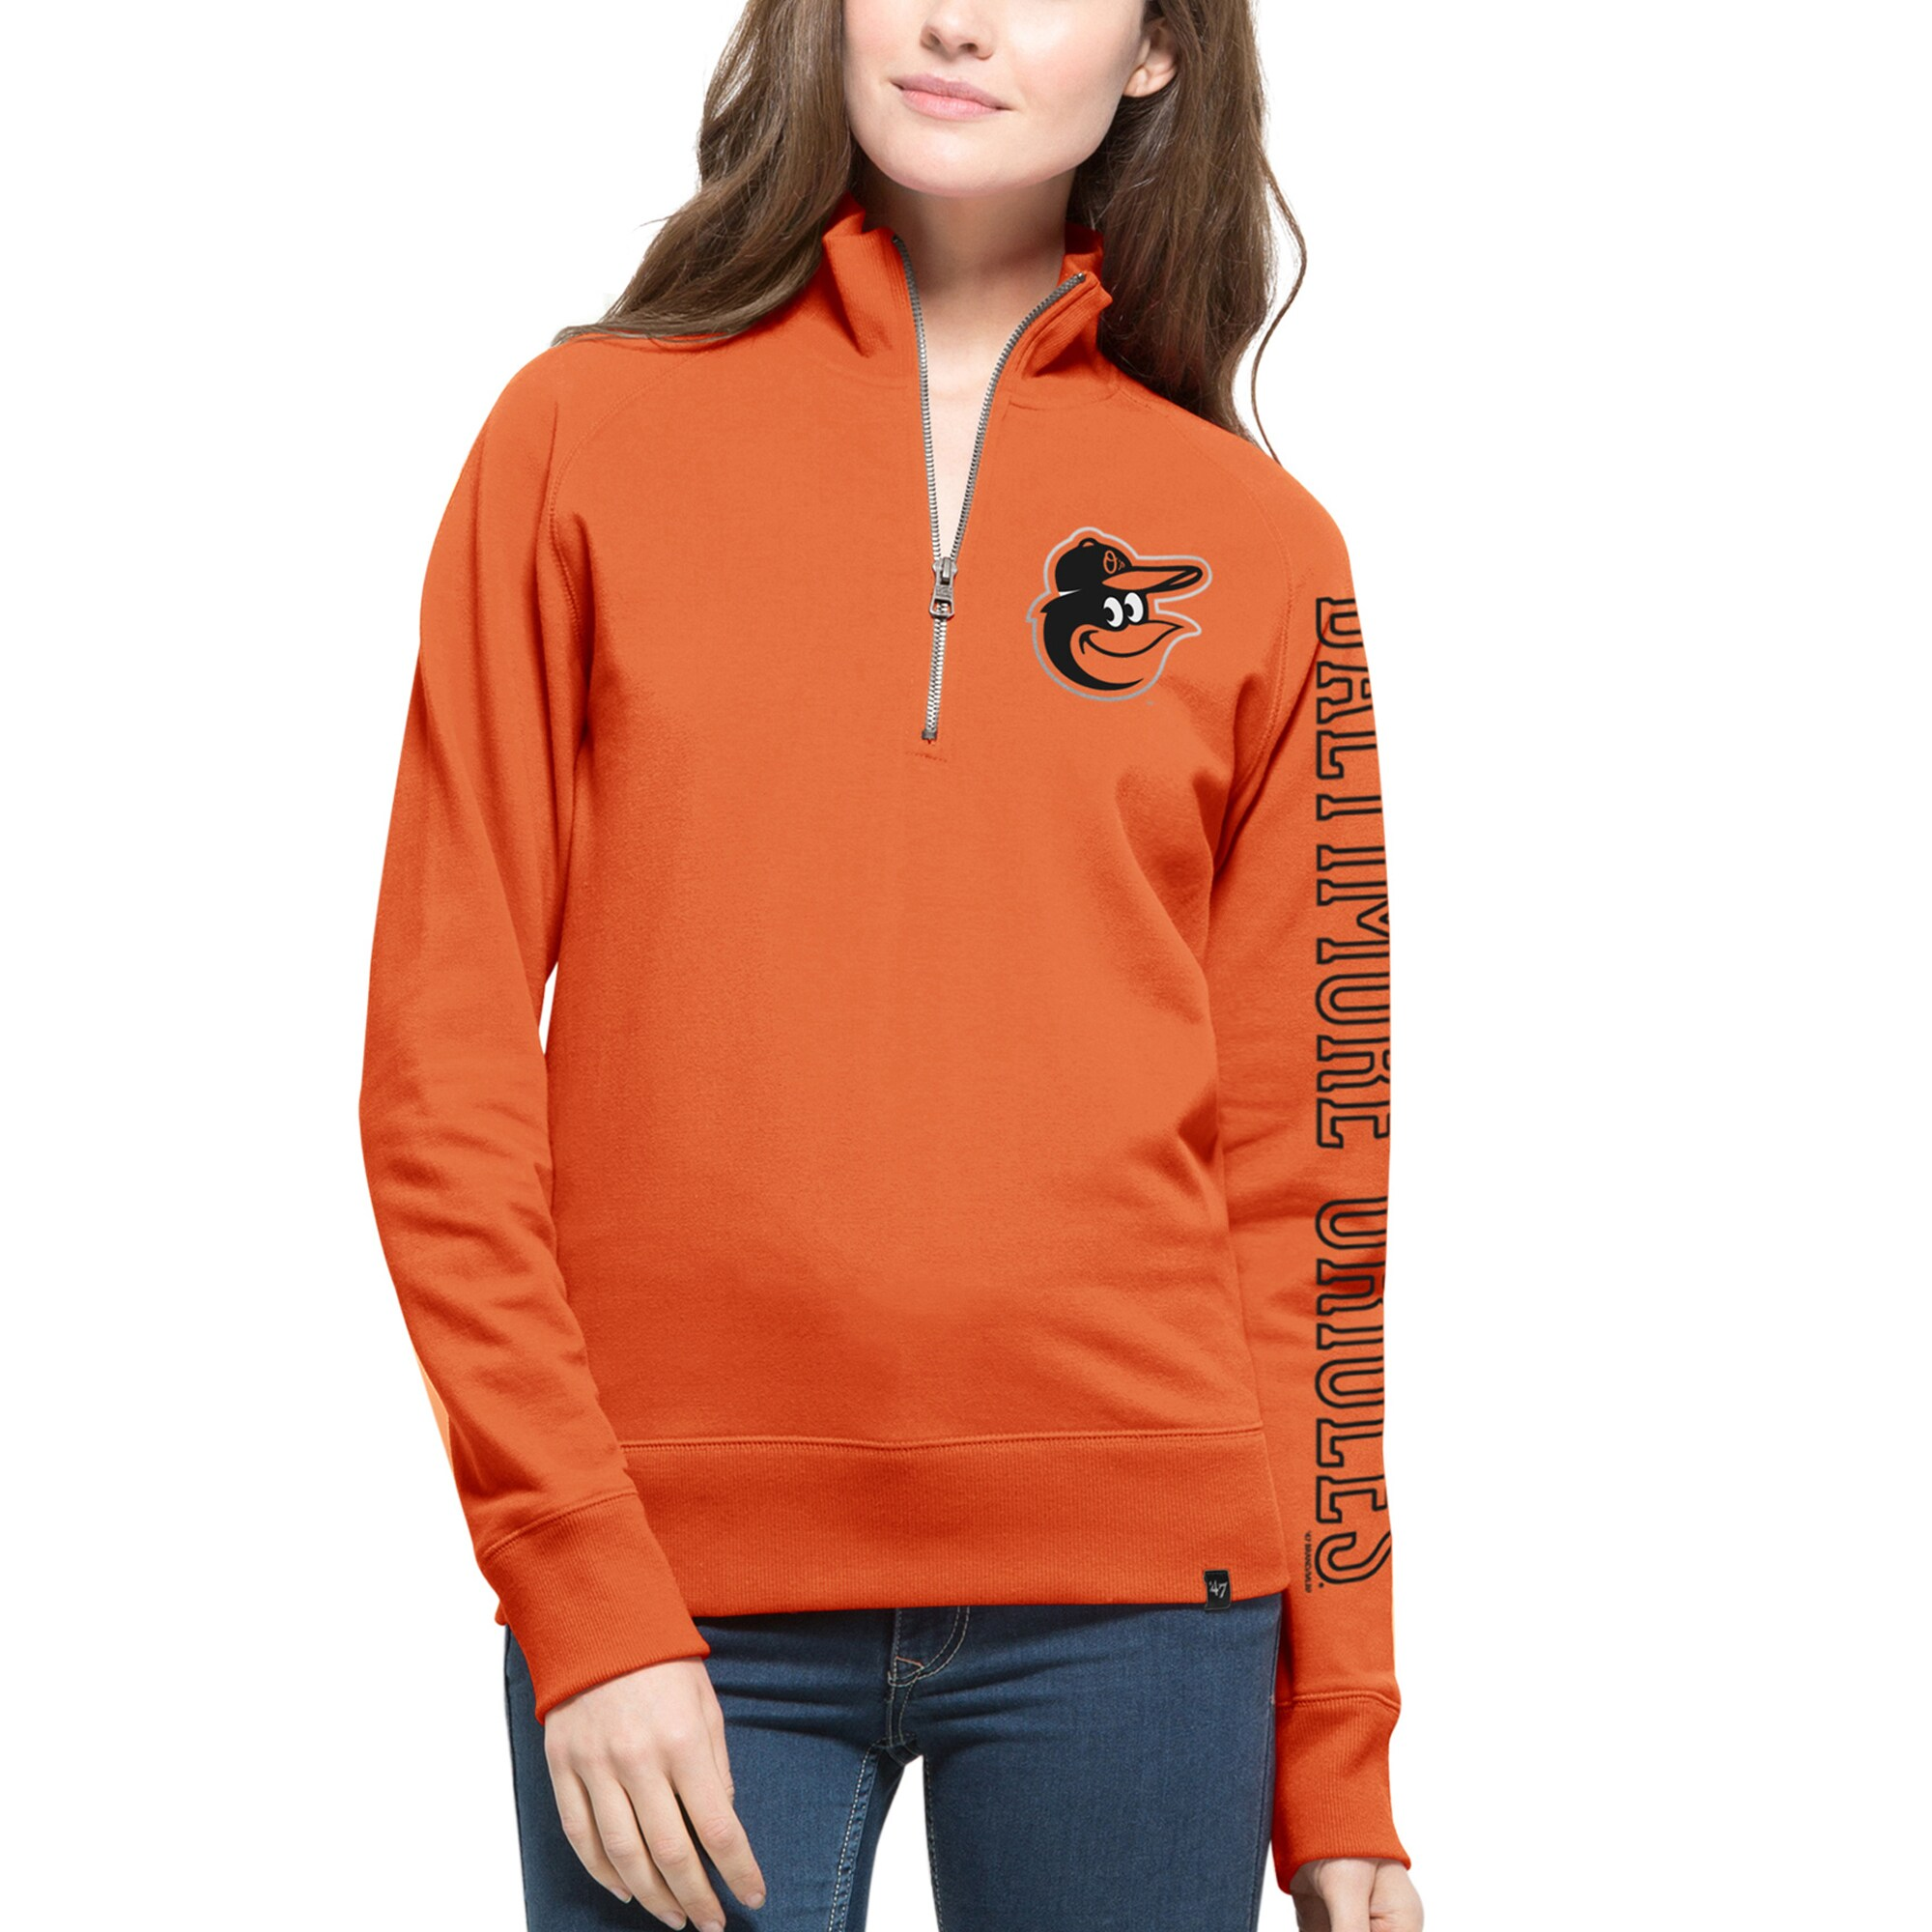 Baltimore Orioles '47 Women's Shimmer Cross-Check Quarter-Zip Sweatshirt - Orange